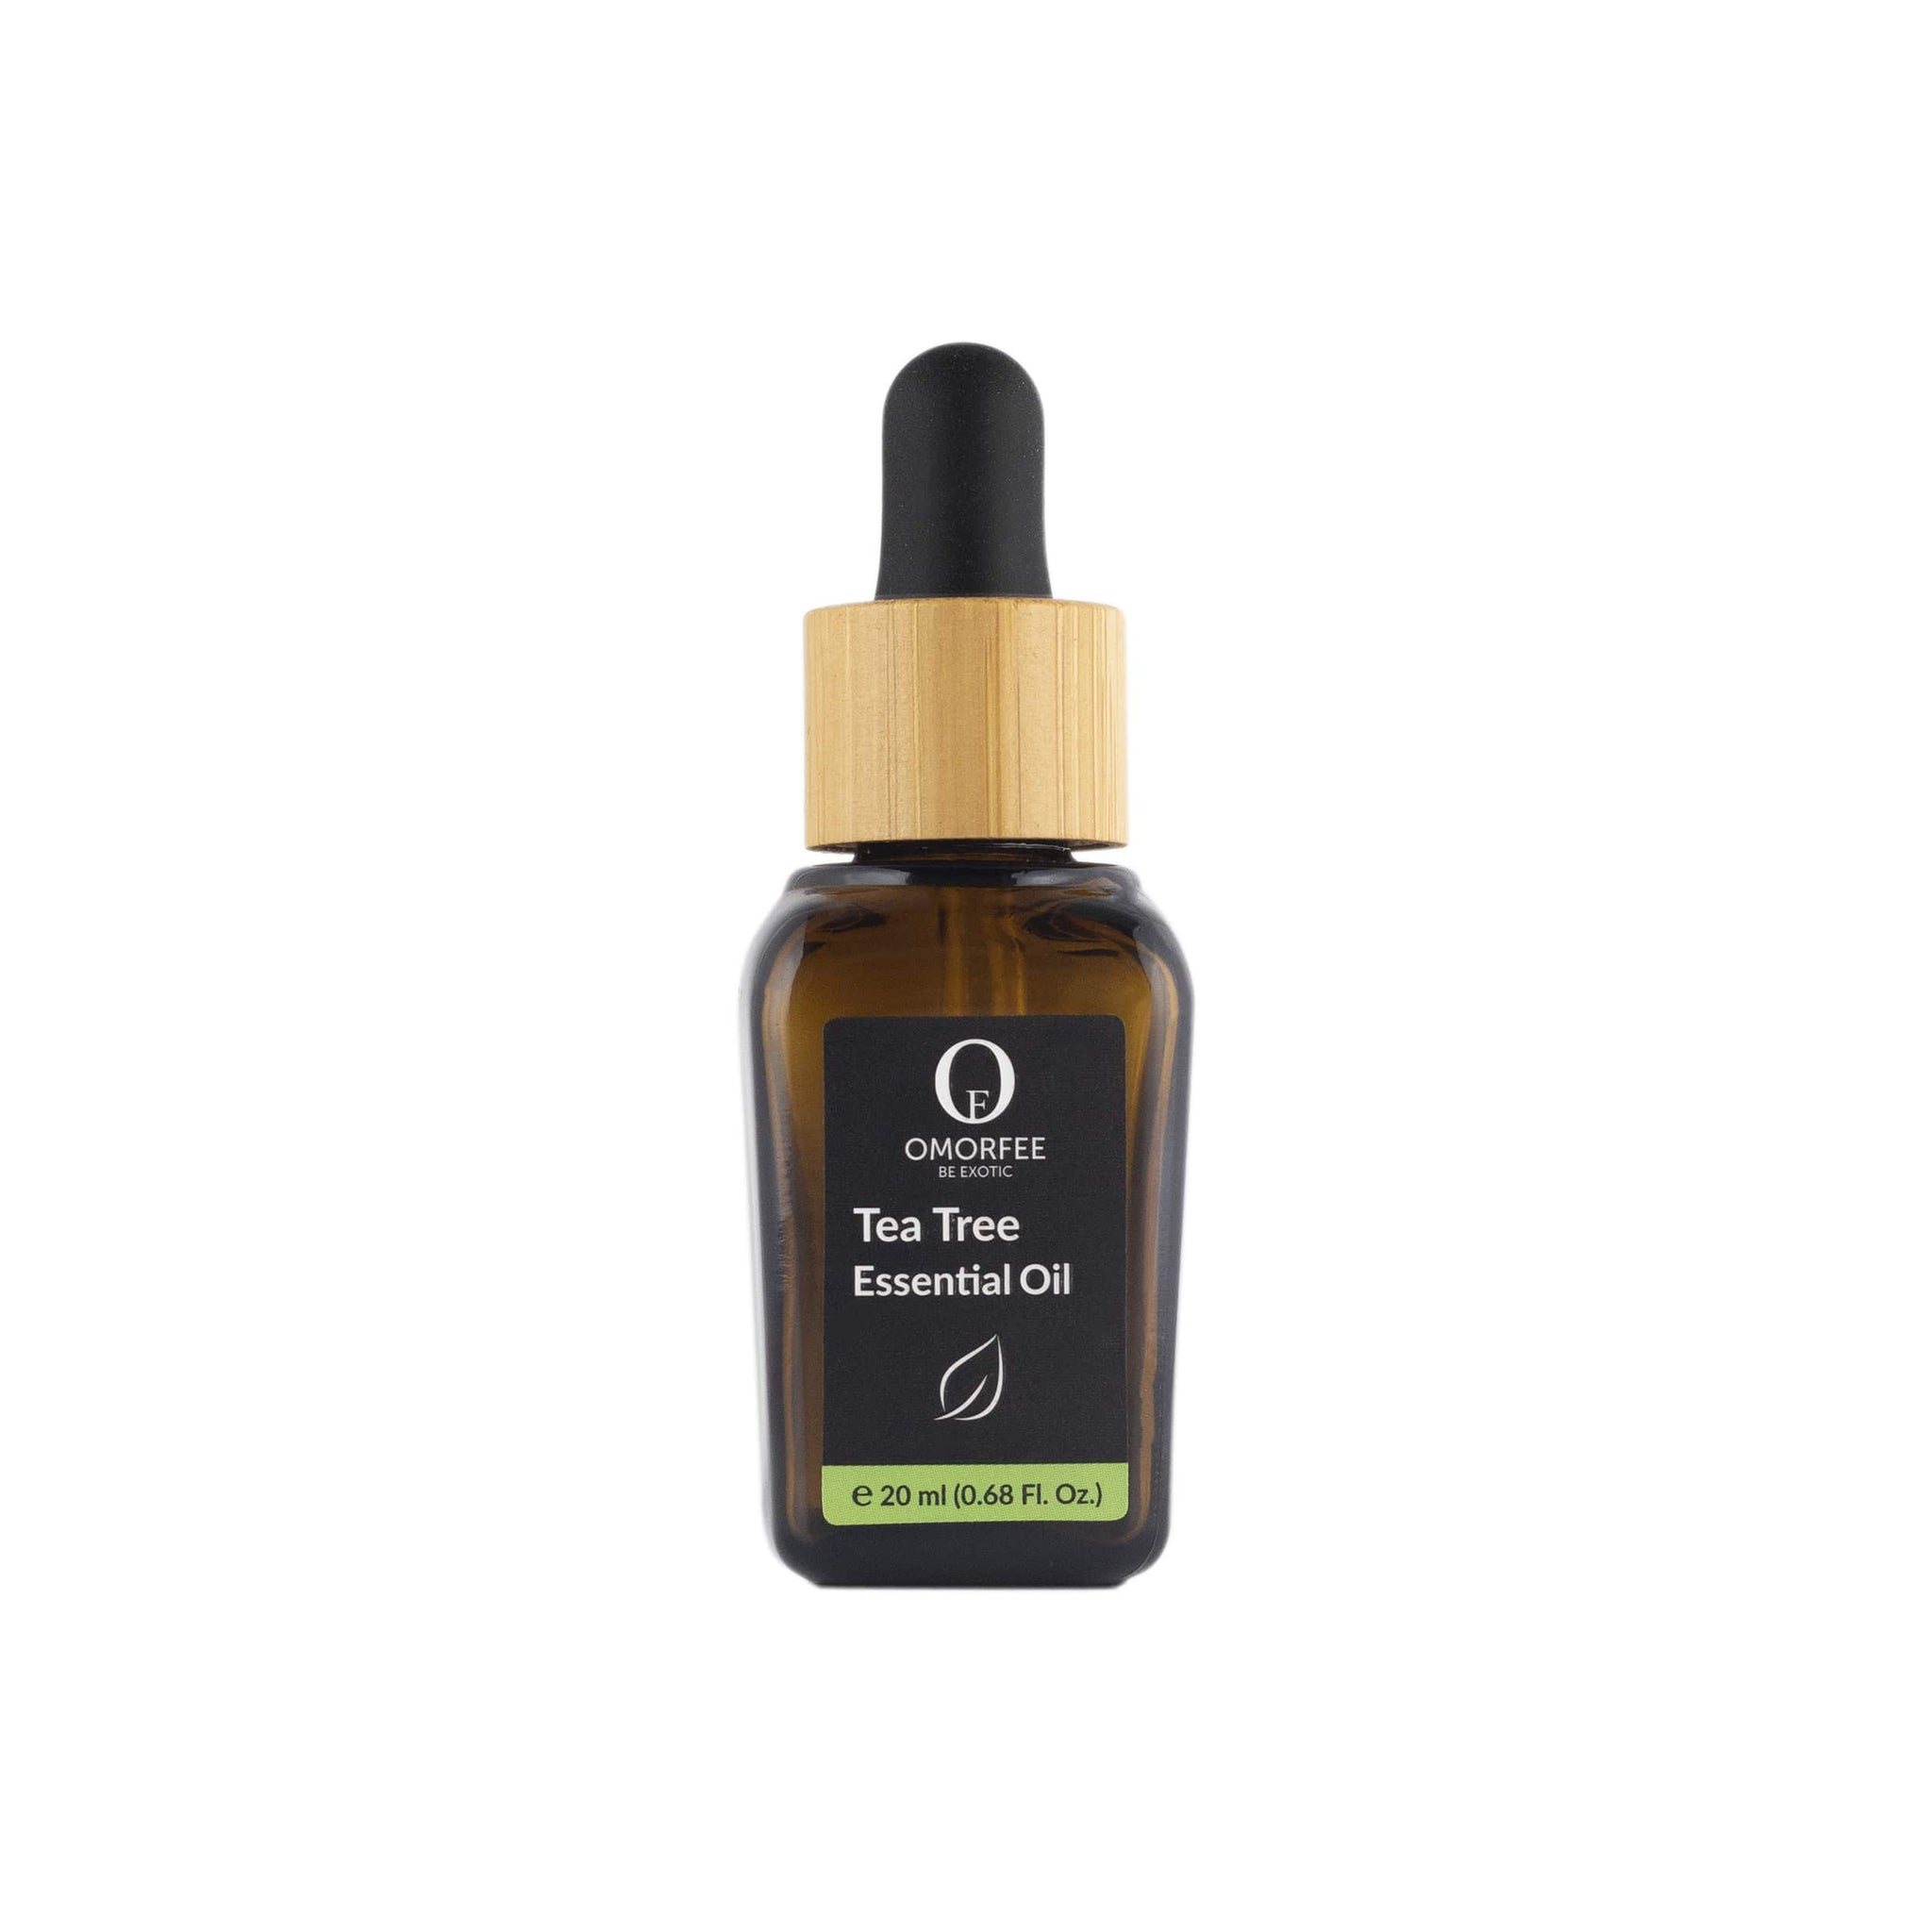 omorfee-tea-tree-essential-oil-tea-tree-oil-best-tea-tree-oil-pure-tea-tree-oil-organic-tea-tree-oil-australian-tea-tree-oil